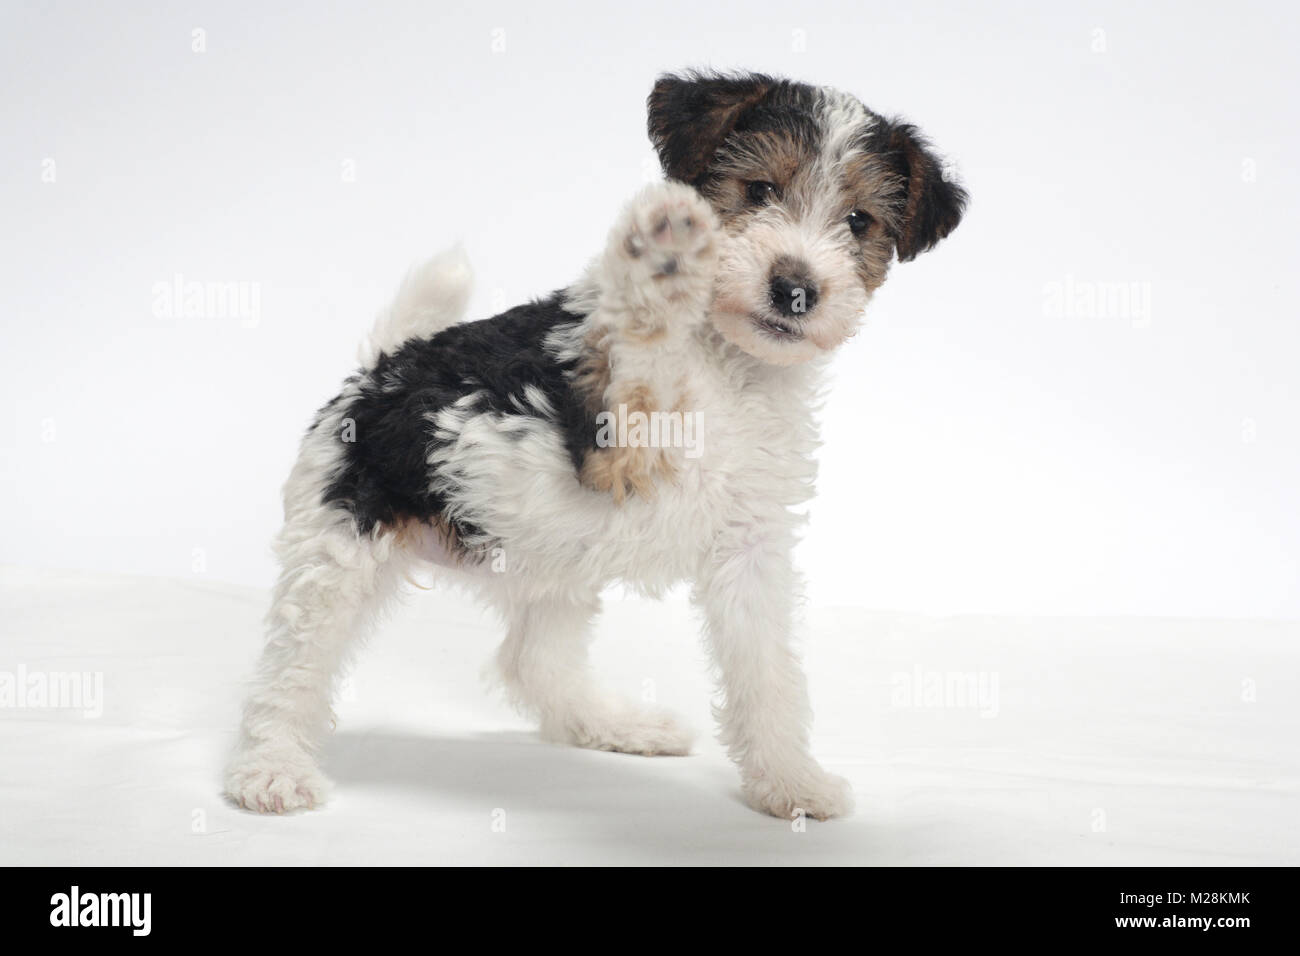 Wirehair Stockfotos & Wirehair Bilder - Alamy